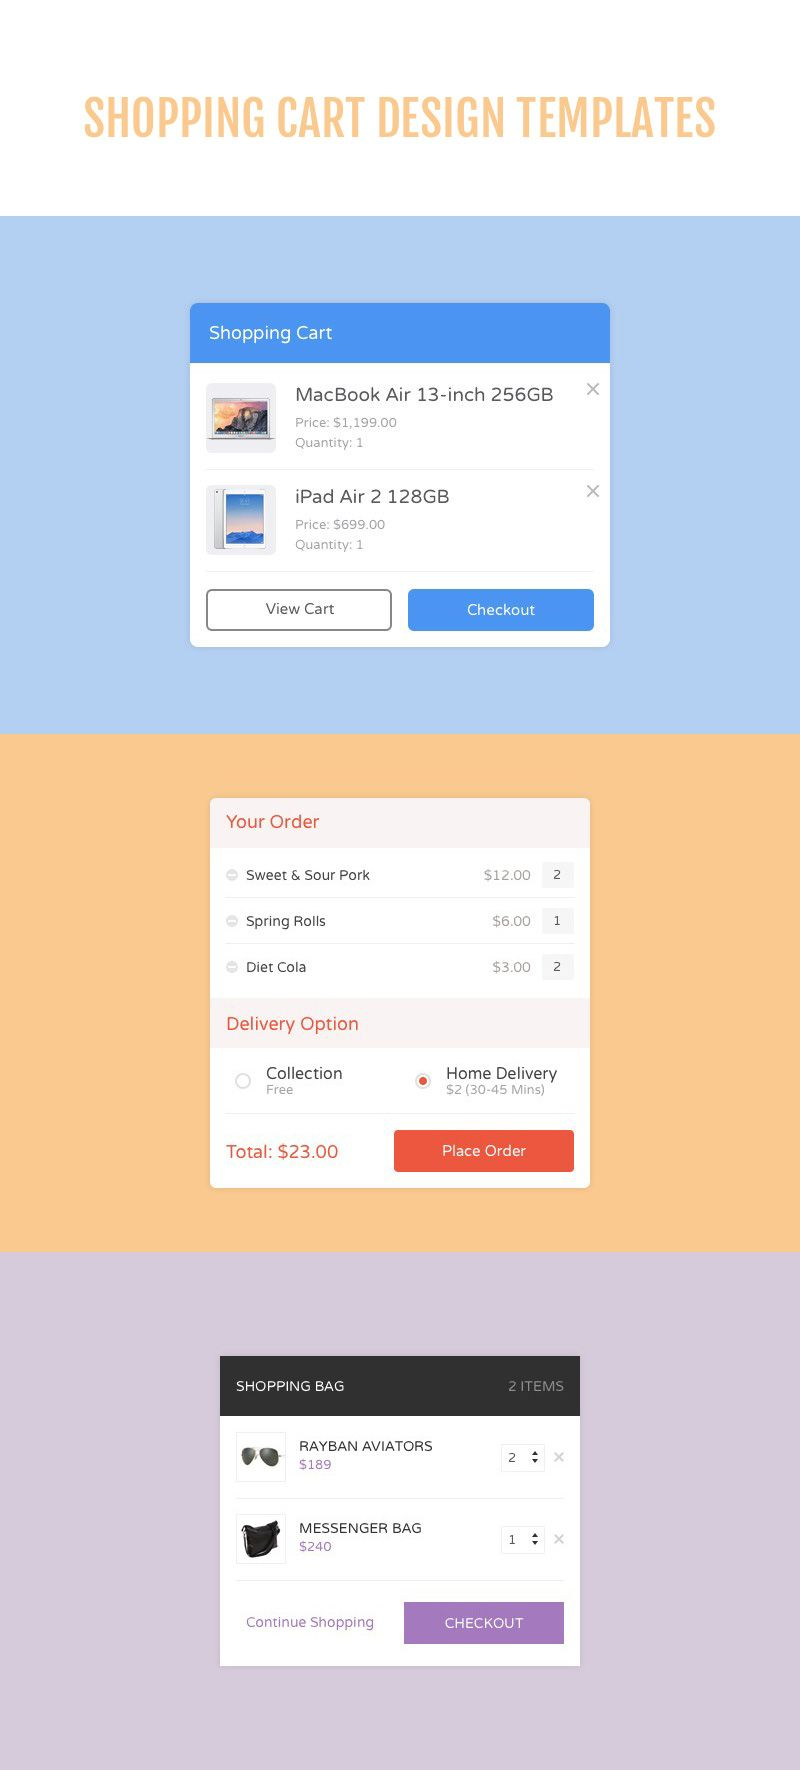 These 4 Free Shopping Cart Templates By Medialoot Can Save You Time Implementing Them Into Your Web Or App Designs Included Are For Physical